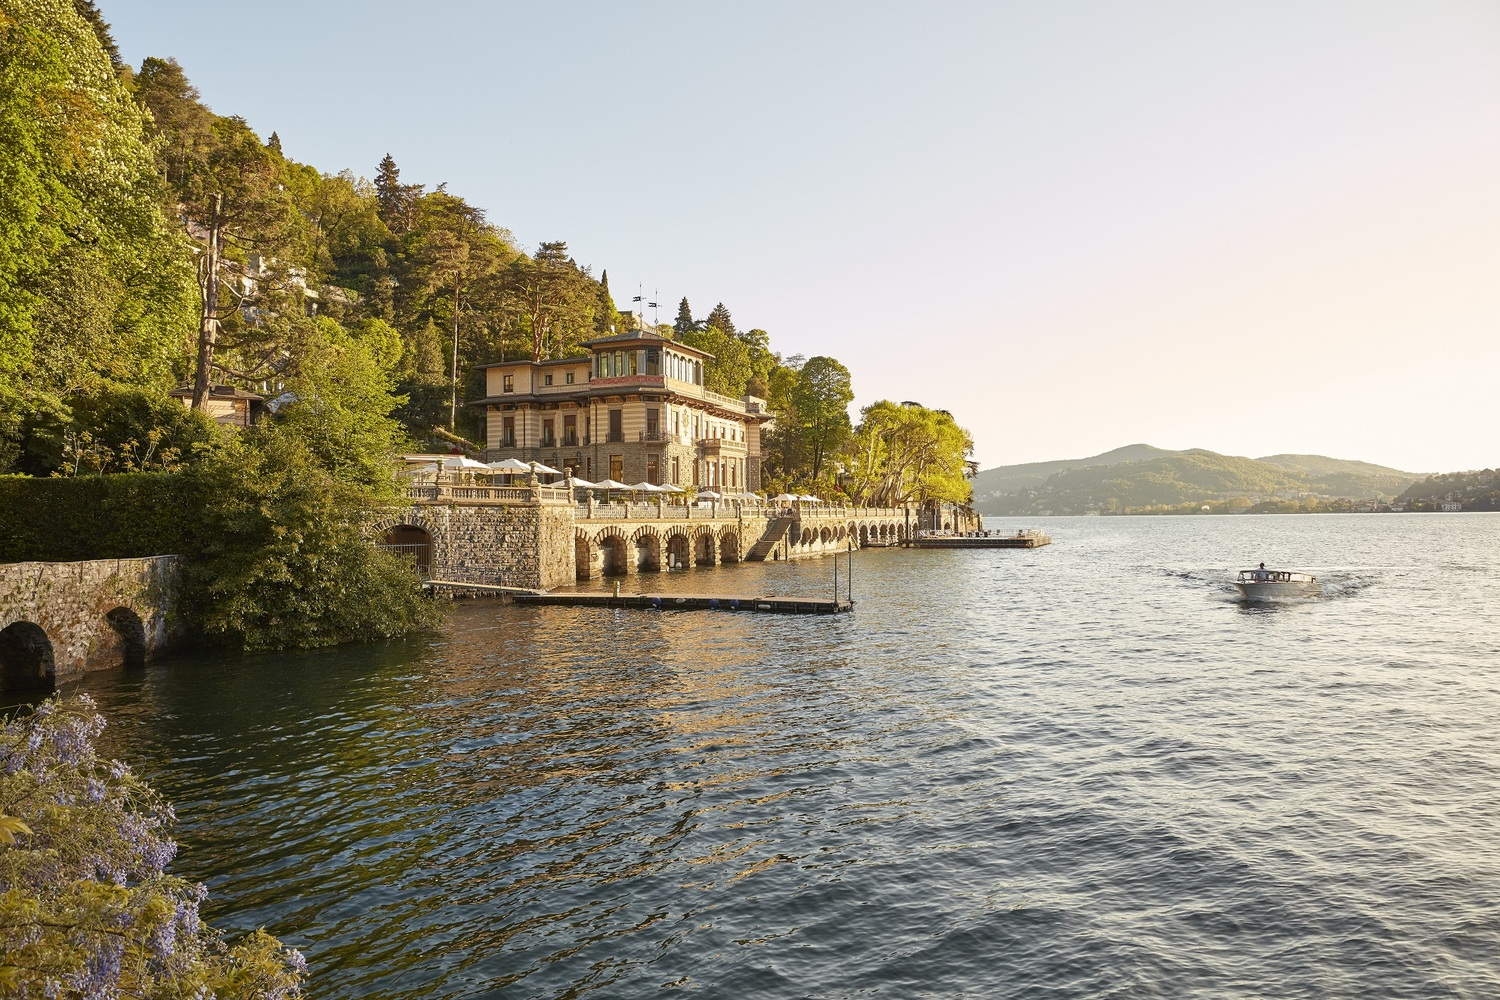 Water, Nature, Outdoors, Building, Architecture, Castle, Waterfront, Lake, Fort, Boat